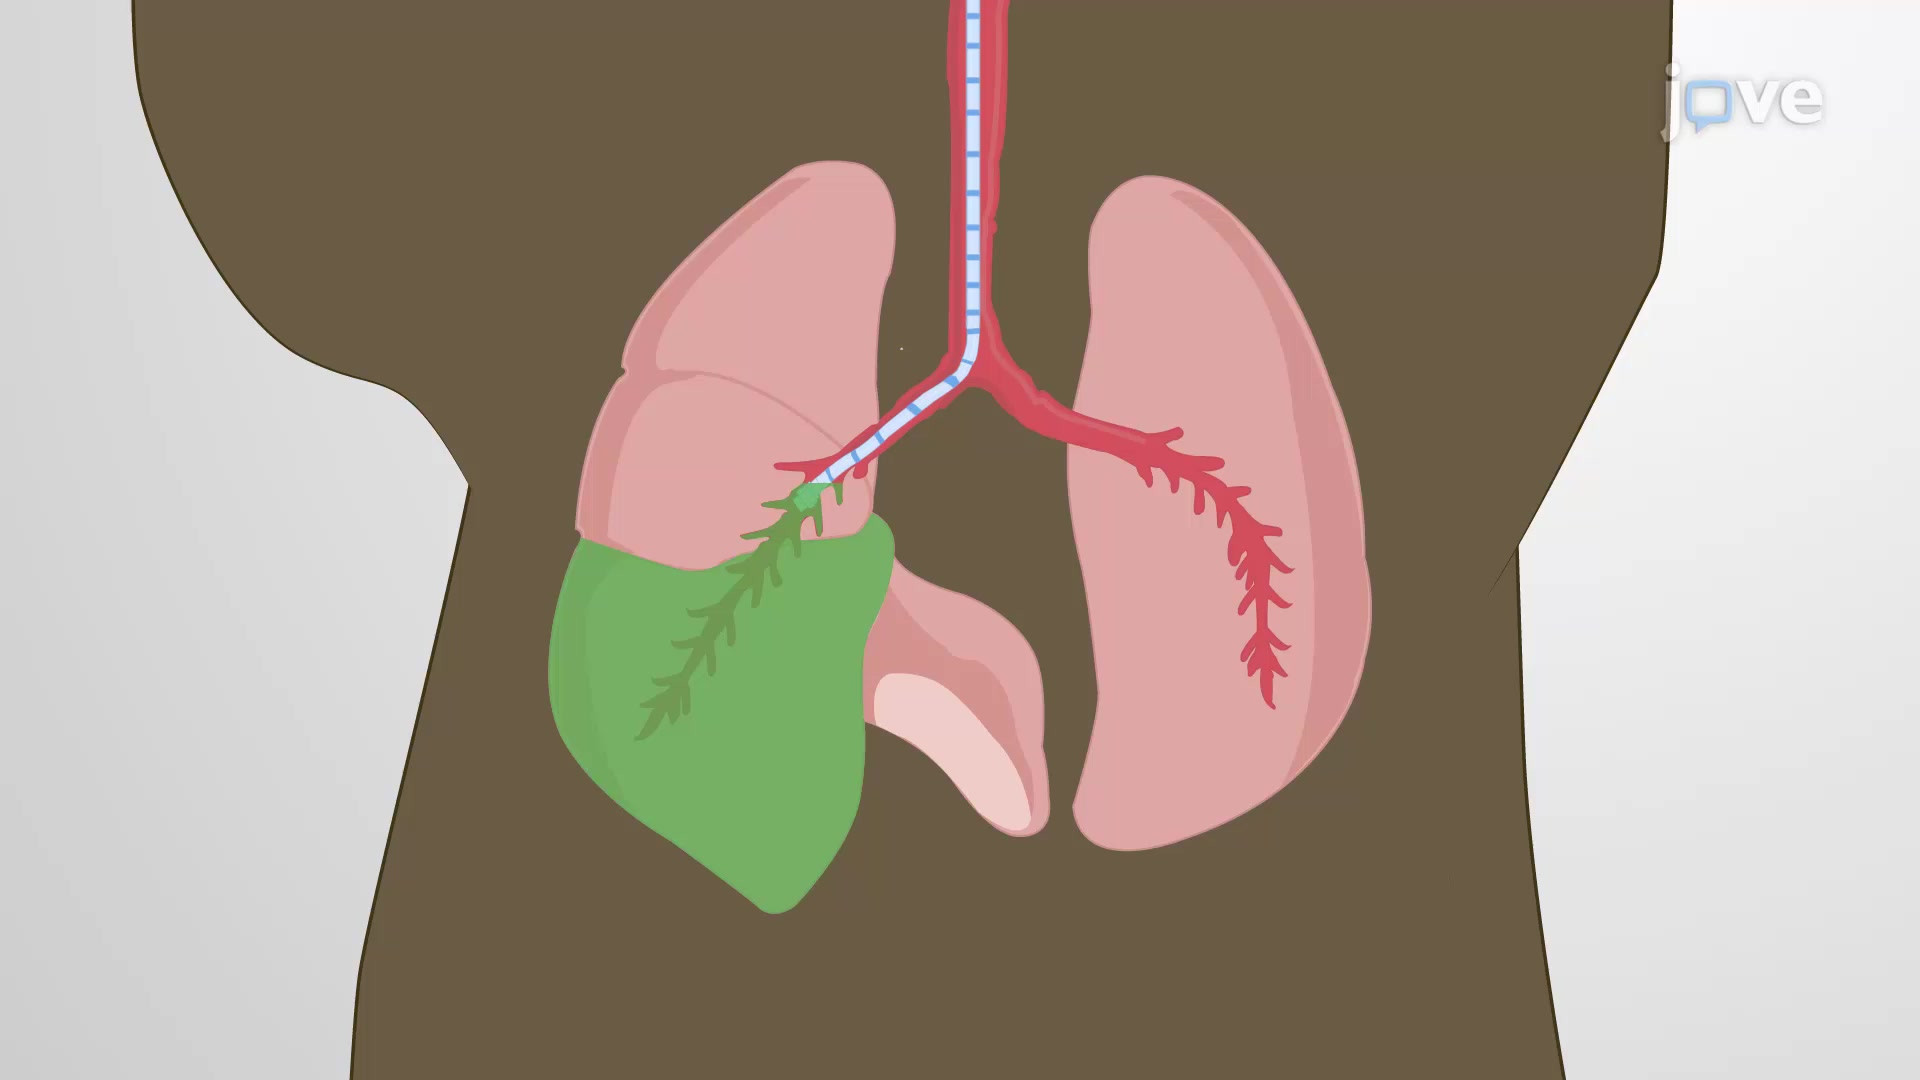 Intrabronchial Delivery: A Technique to Administer an Experimental Agent Selectively Into a Mouse Lung